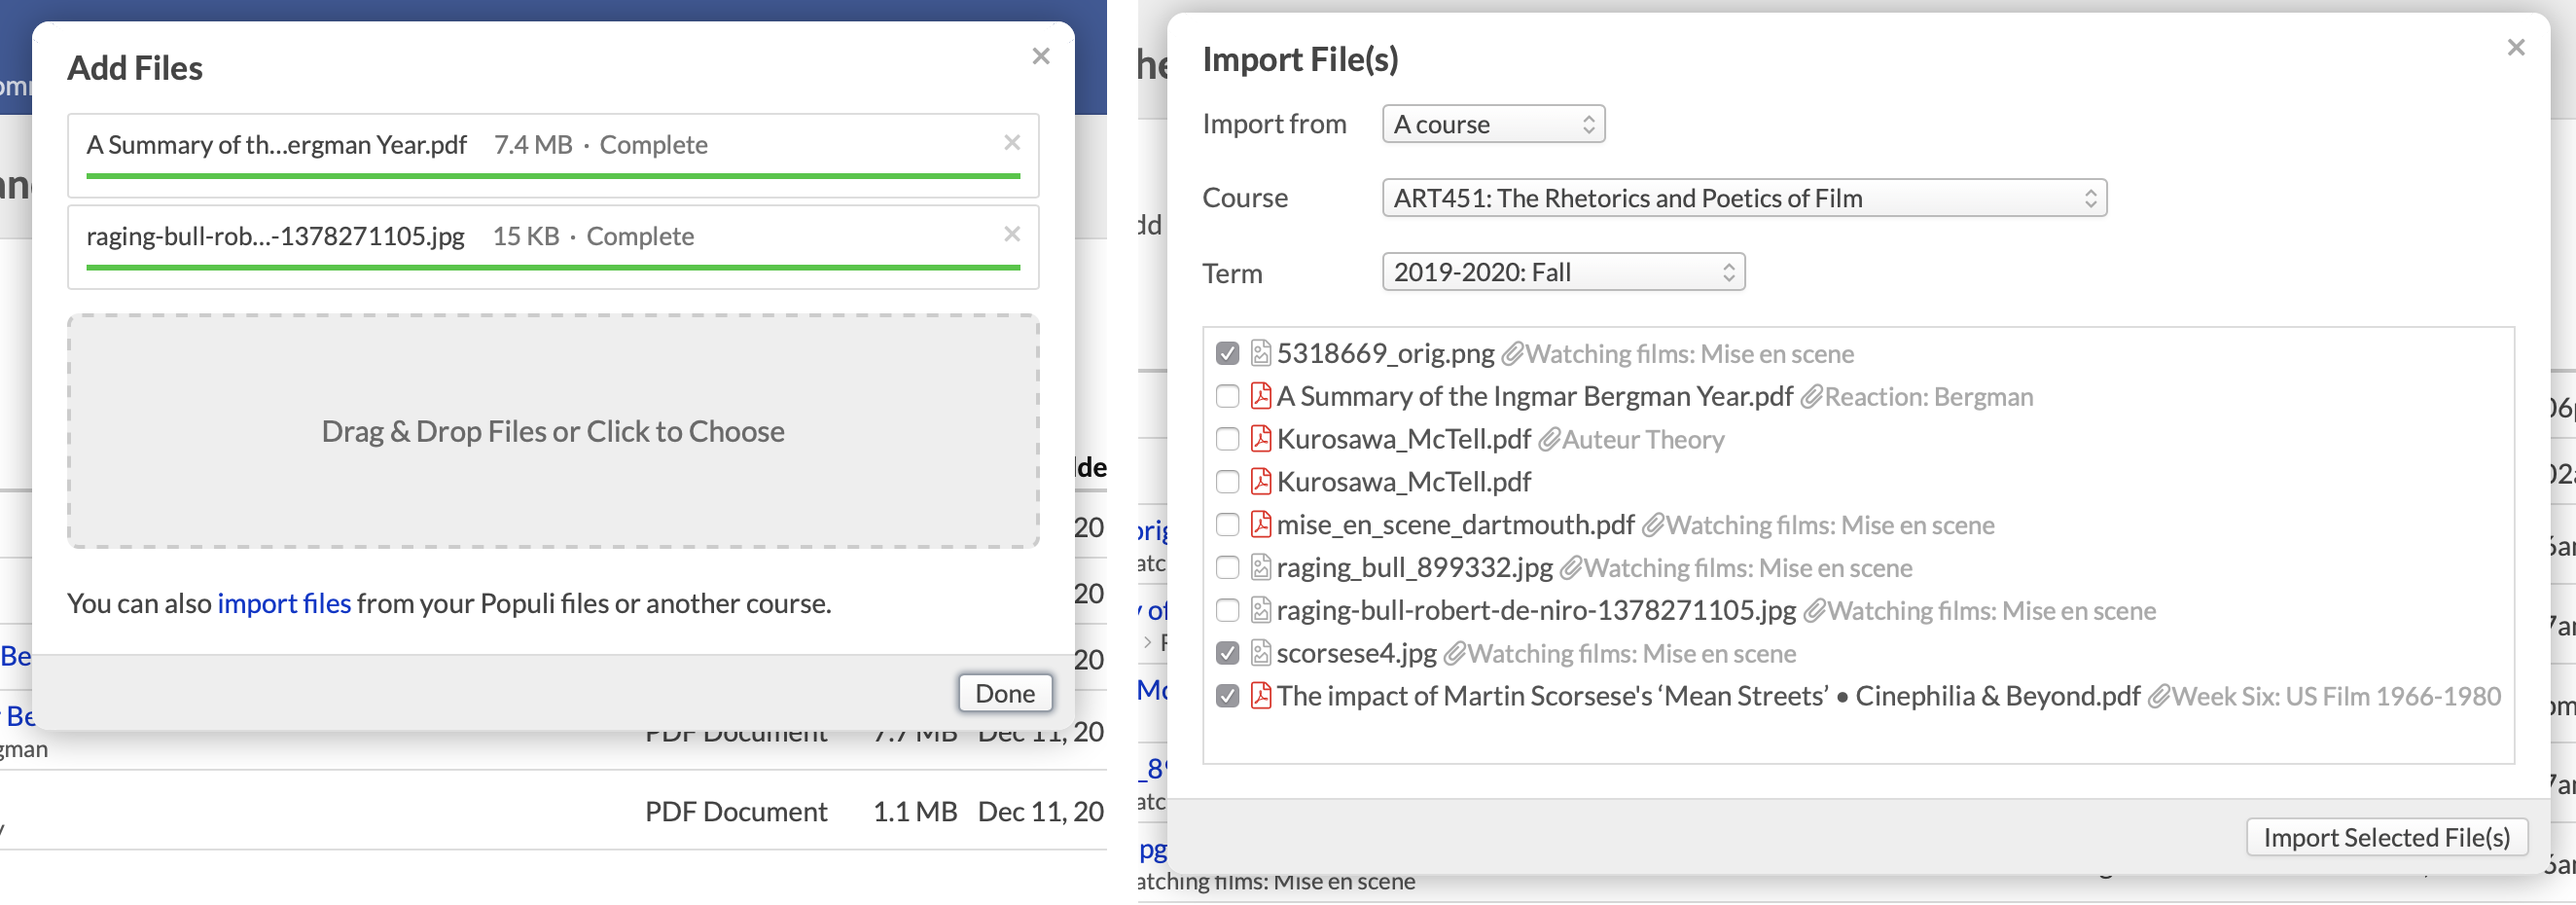 course_add_import_files